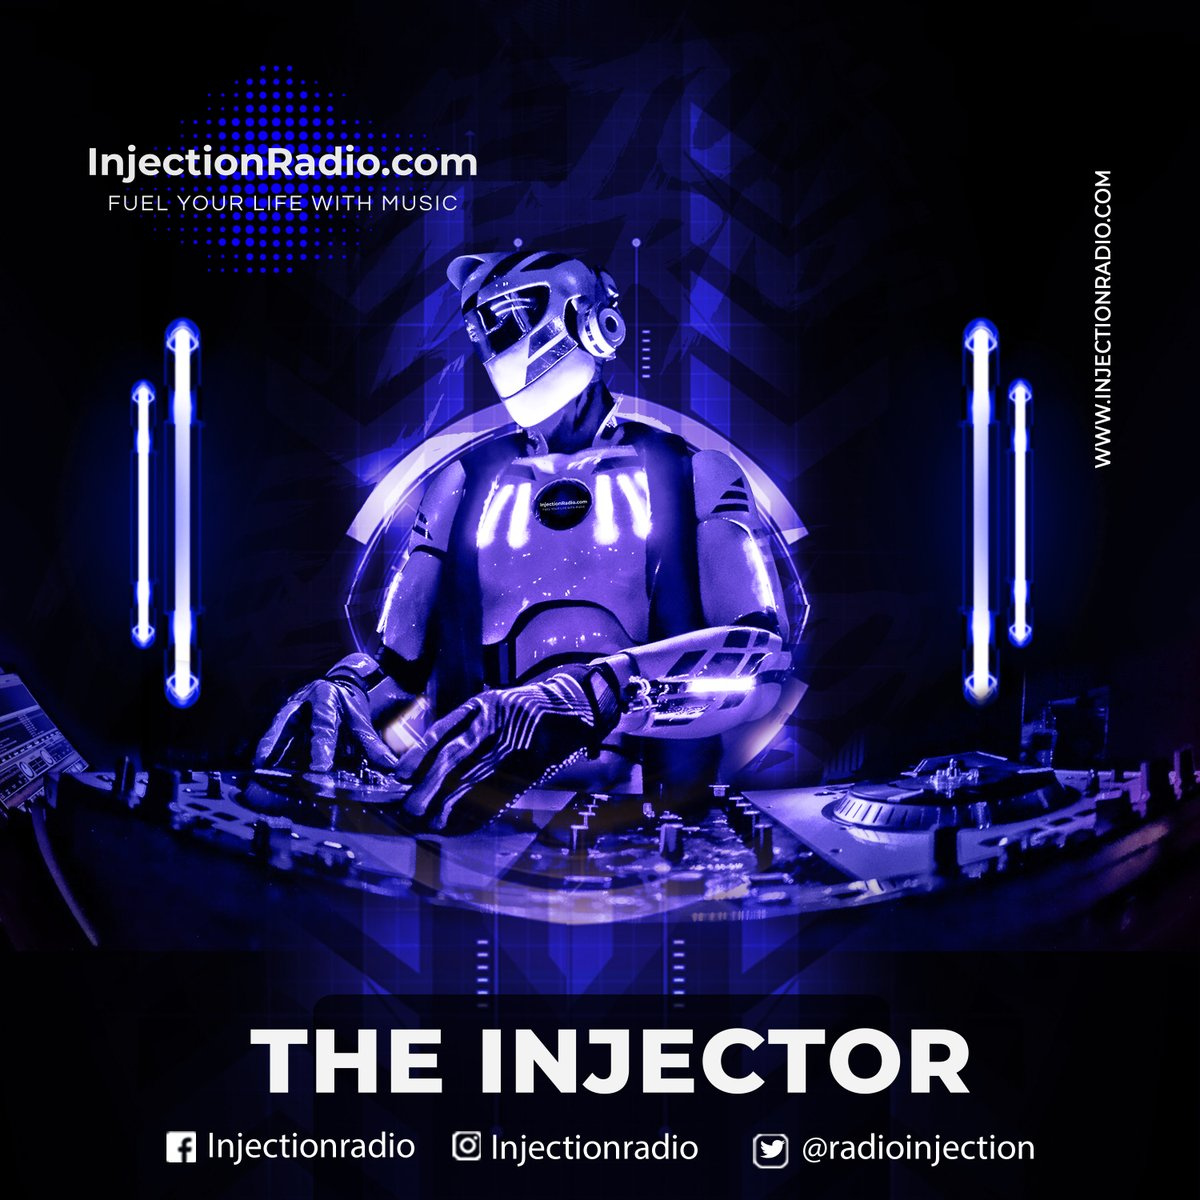 Remember! We currently have no Live DJ's during the day! But THE INJECTOR is here to keep you partying strong! Tune in now at http://www.injectionradio.com #party #partyatwork #partytime #grabthespeaker #liveradio #robotpic.twitter.com/ylulU6HPq8